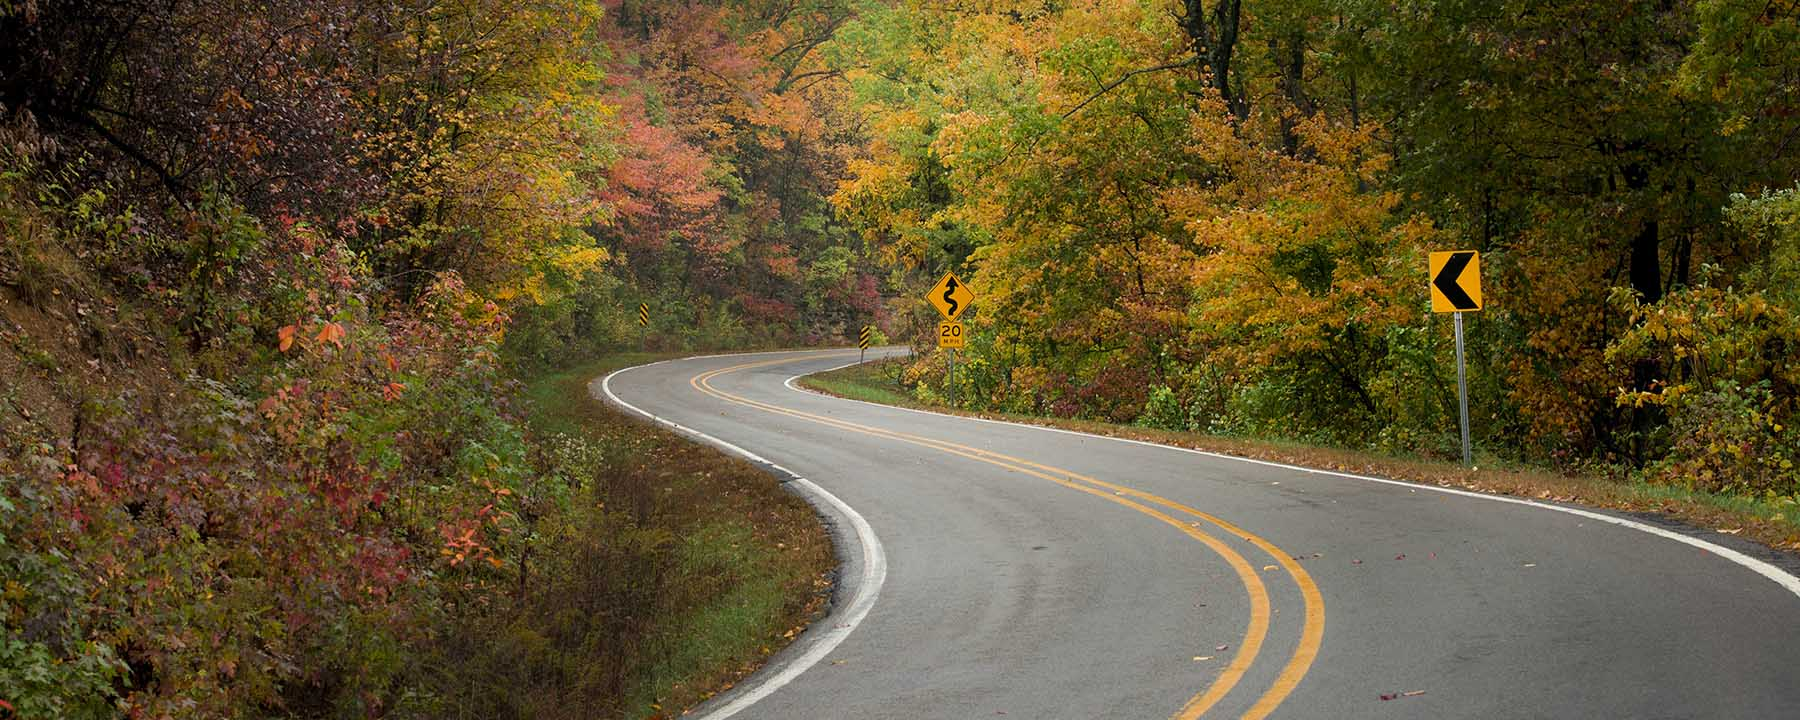 Arkansas-Good-Roads-Foundation-NEW-Slider-Image-3